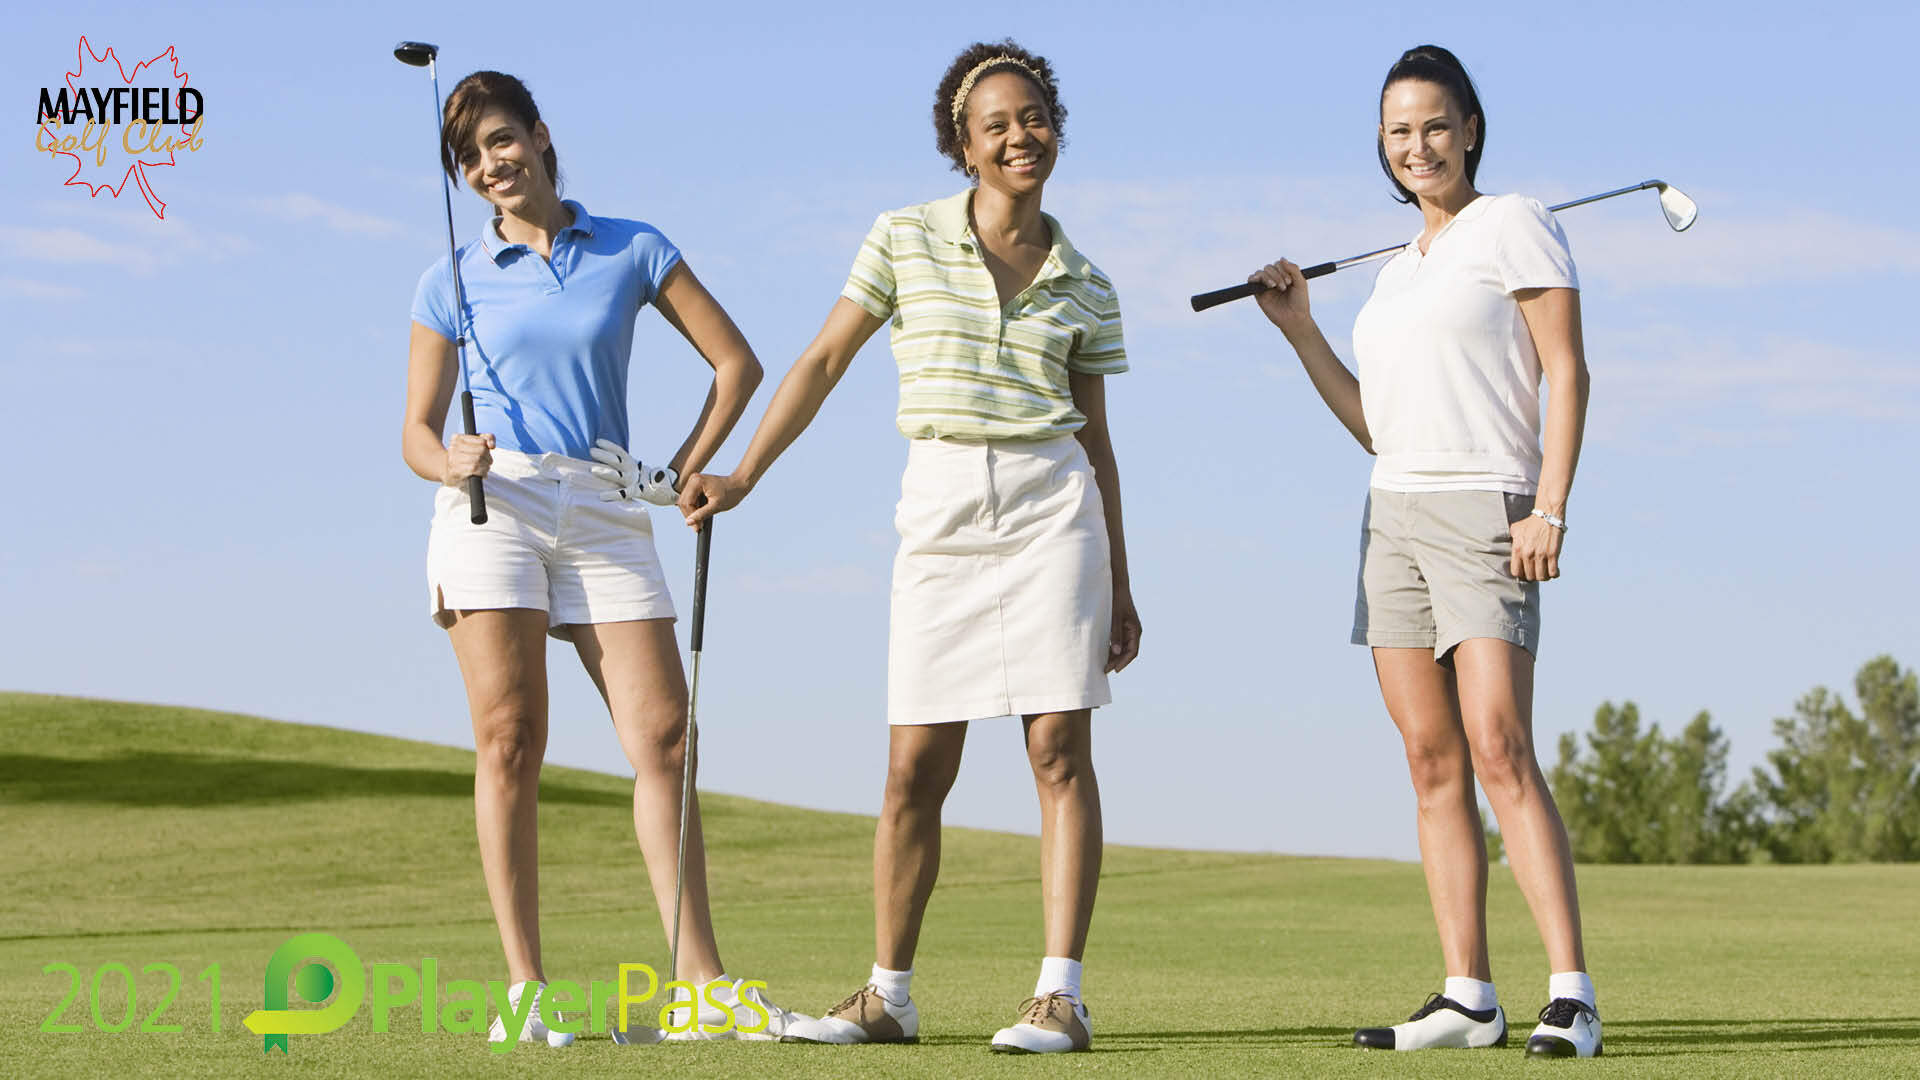 2021 PlayerPass (Three women golfers standing on the tee)